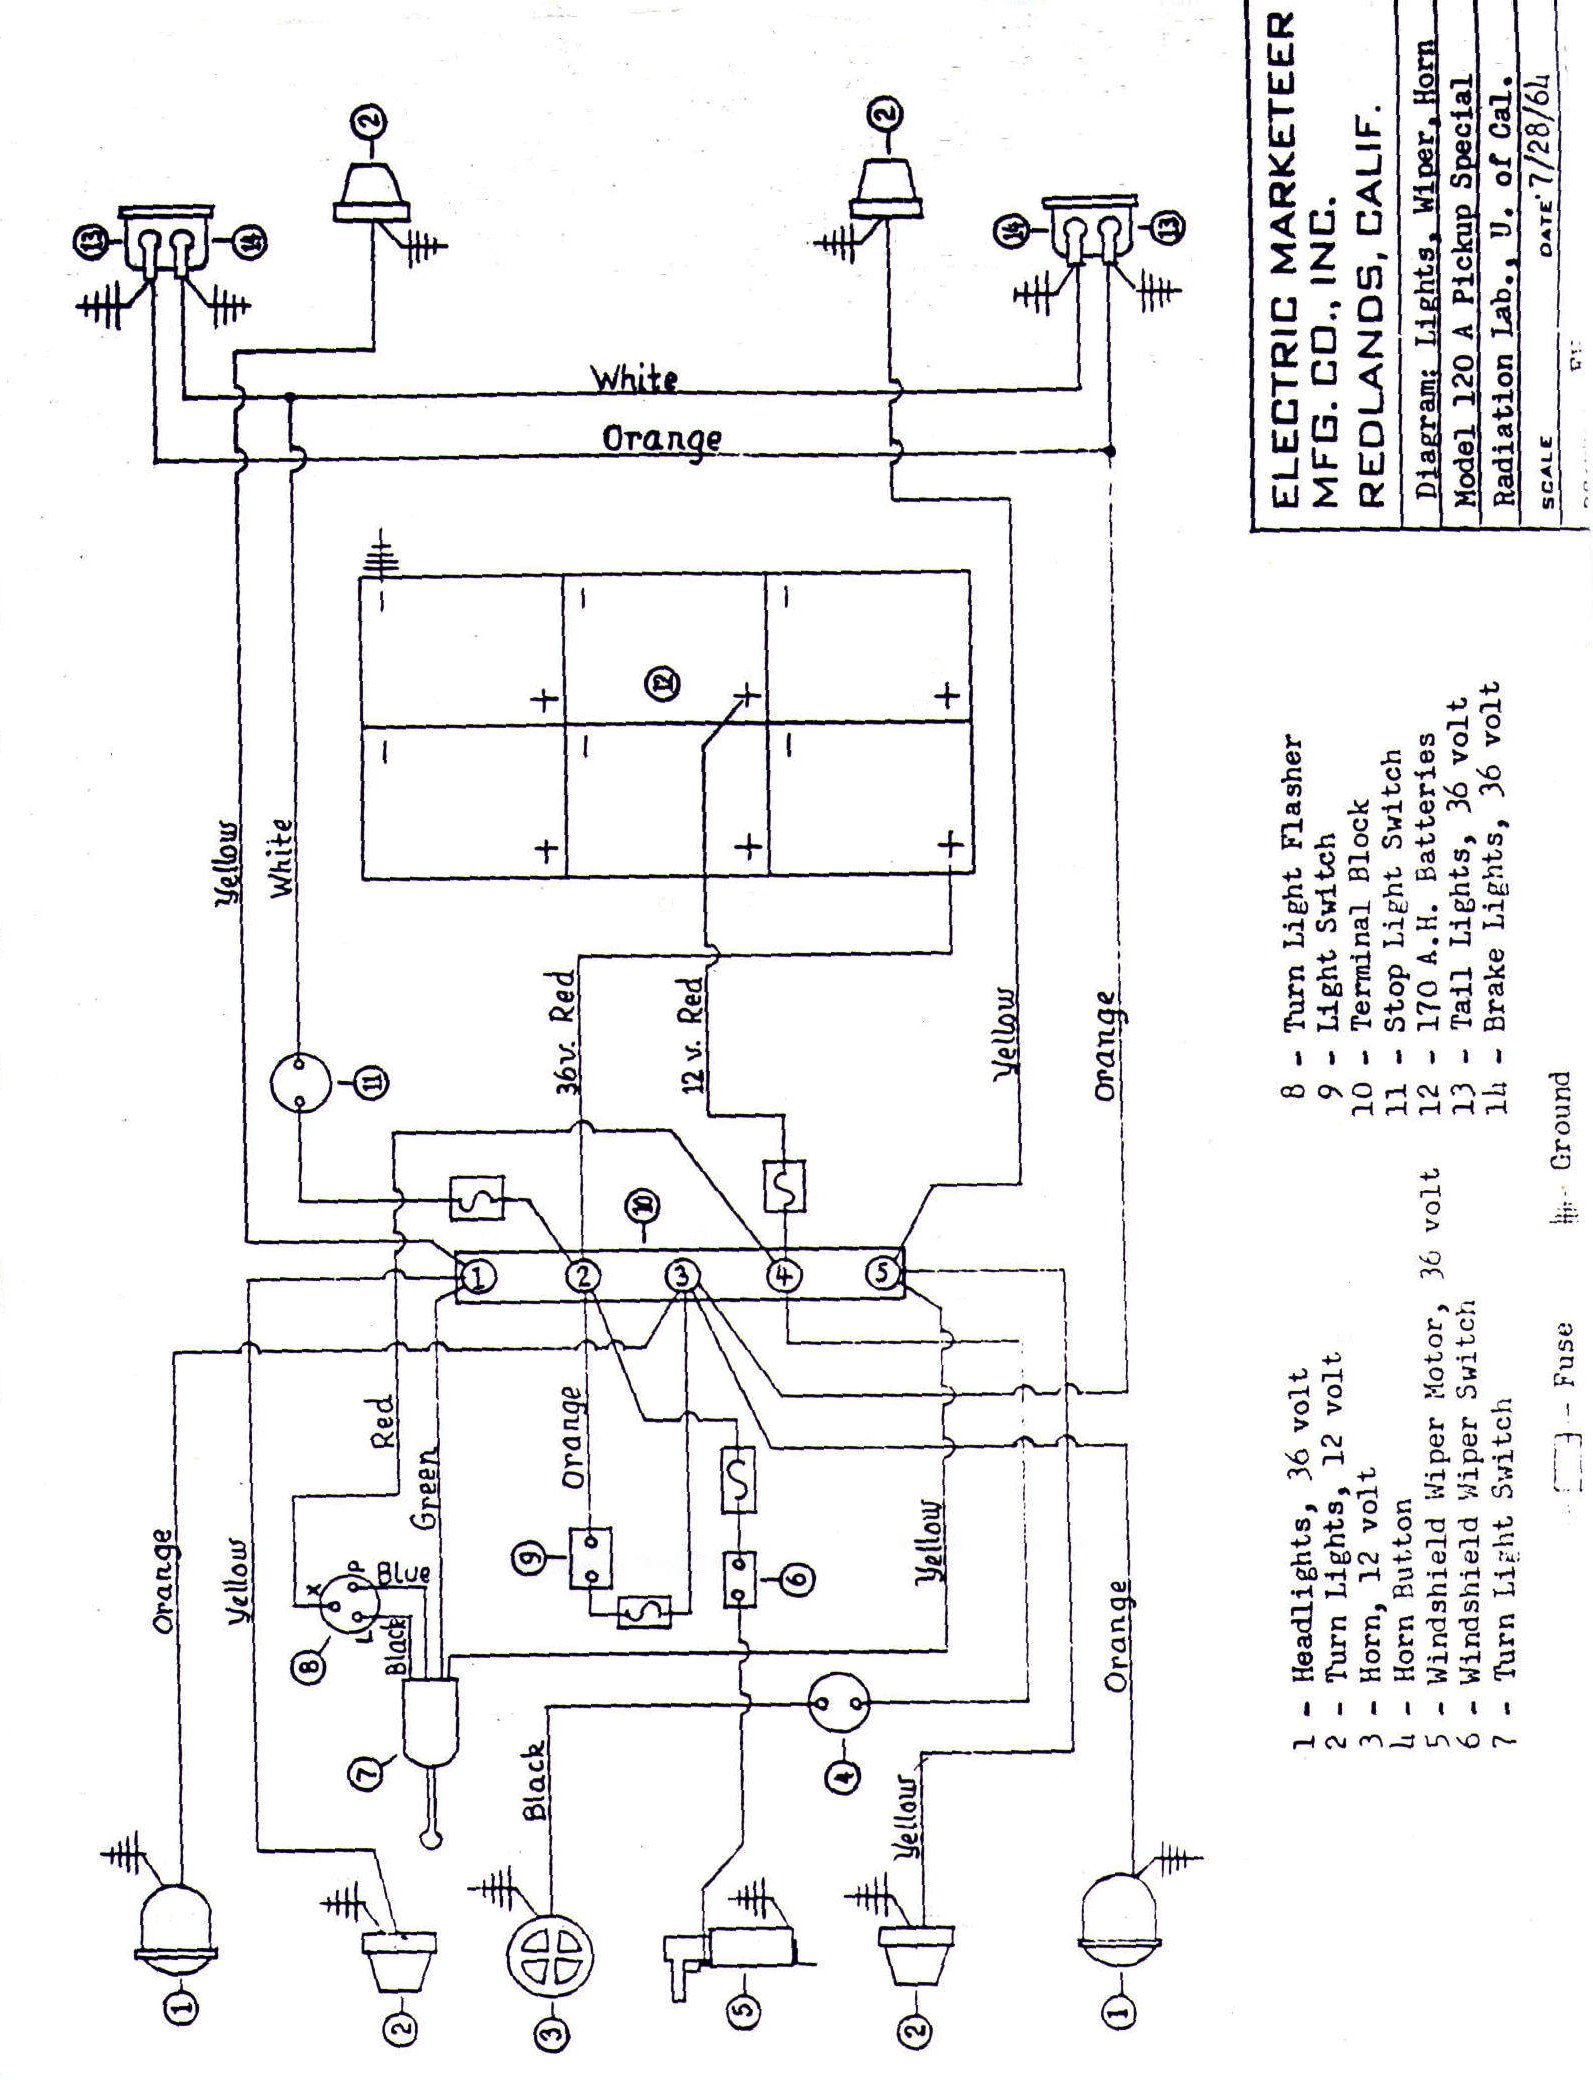 Ez Go Golf Cart Parts Diagram moreover 20310 Gas Club Car Diagrams 1984 2005 A further Battery Wiring Diagram For Ezgo Golf Cart further Club Car Wiring Diagram likewise Sch. on wiring diagram for ezgo golf cart